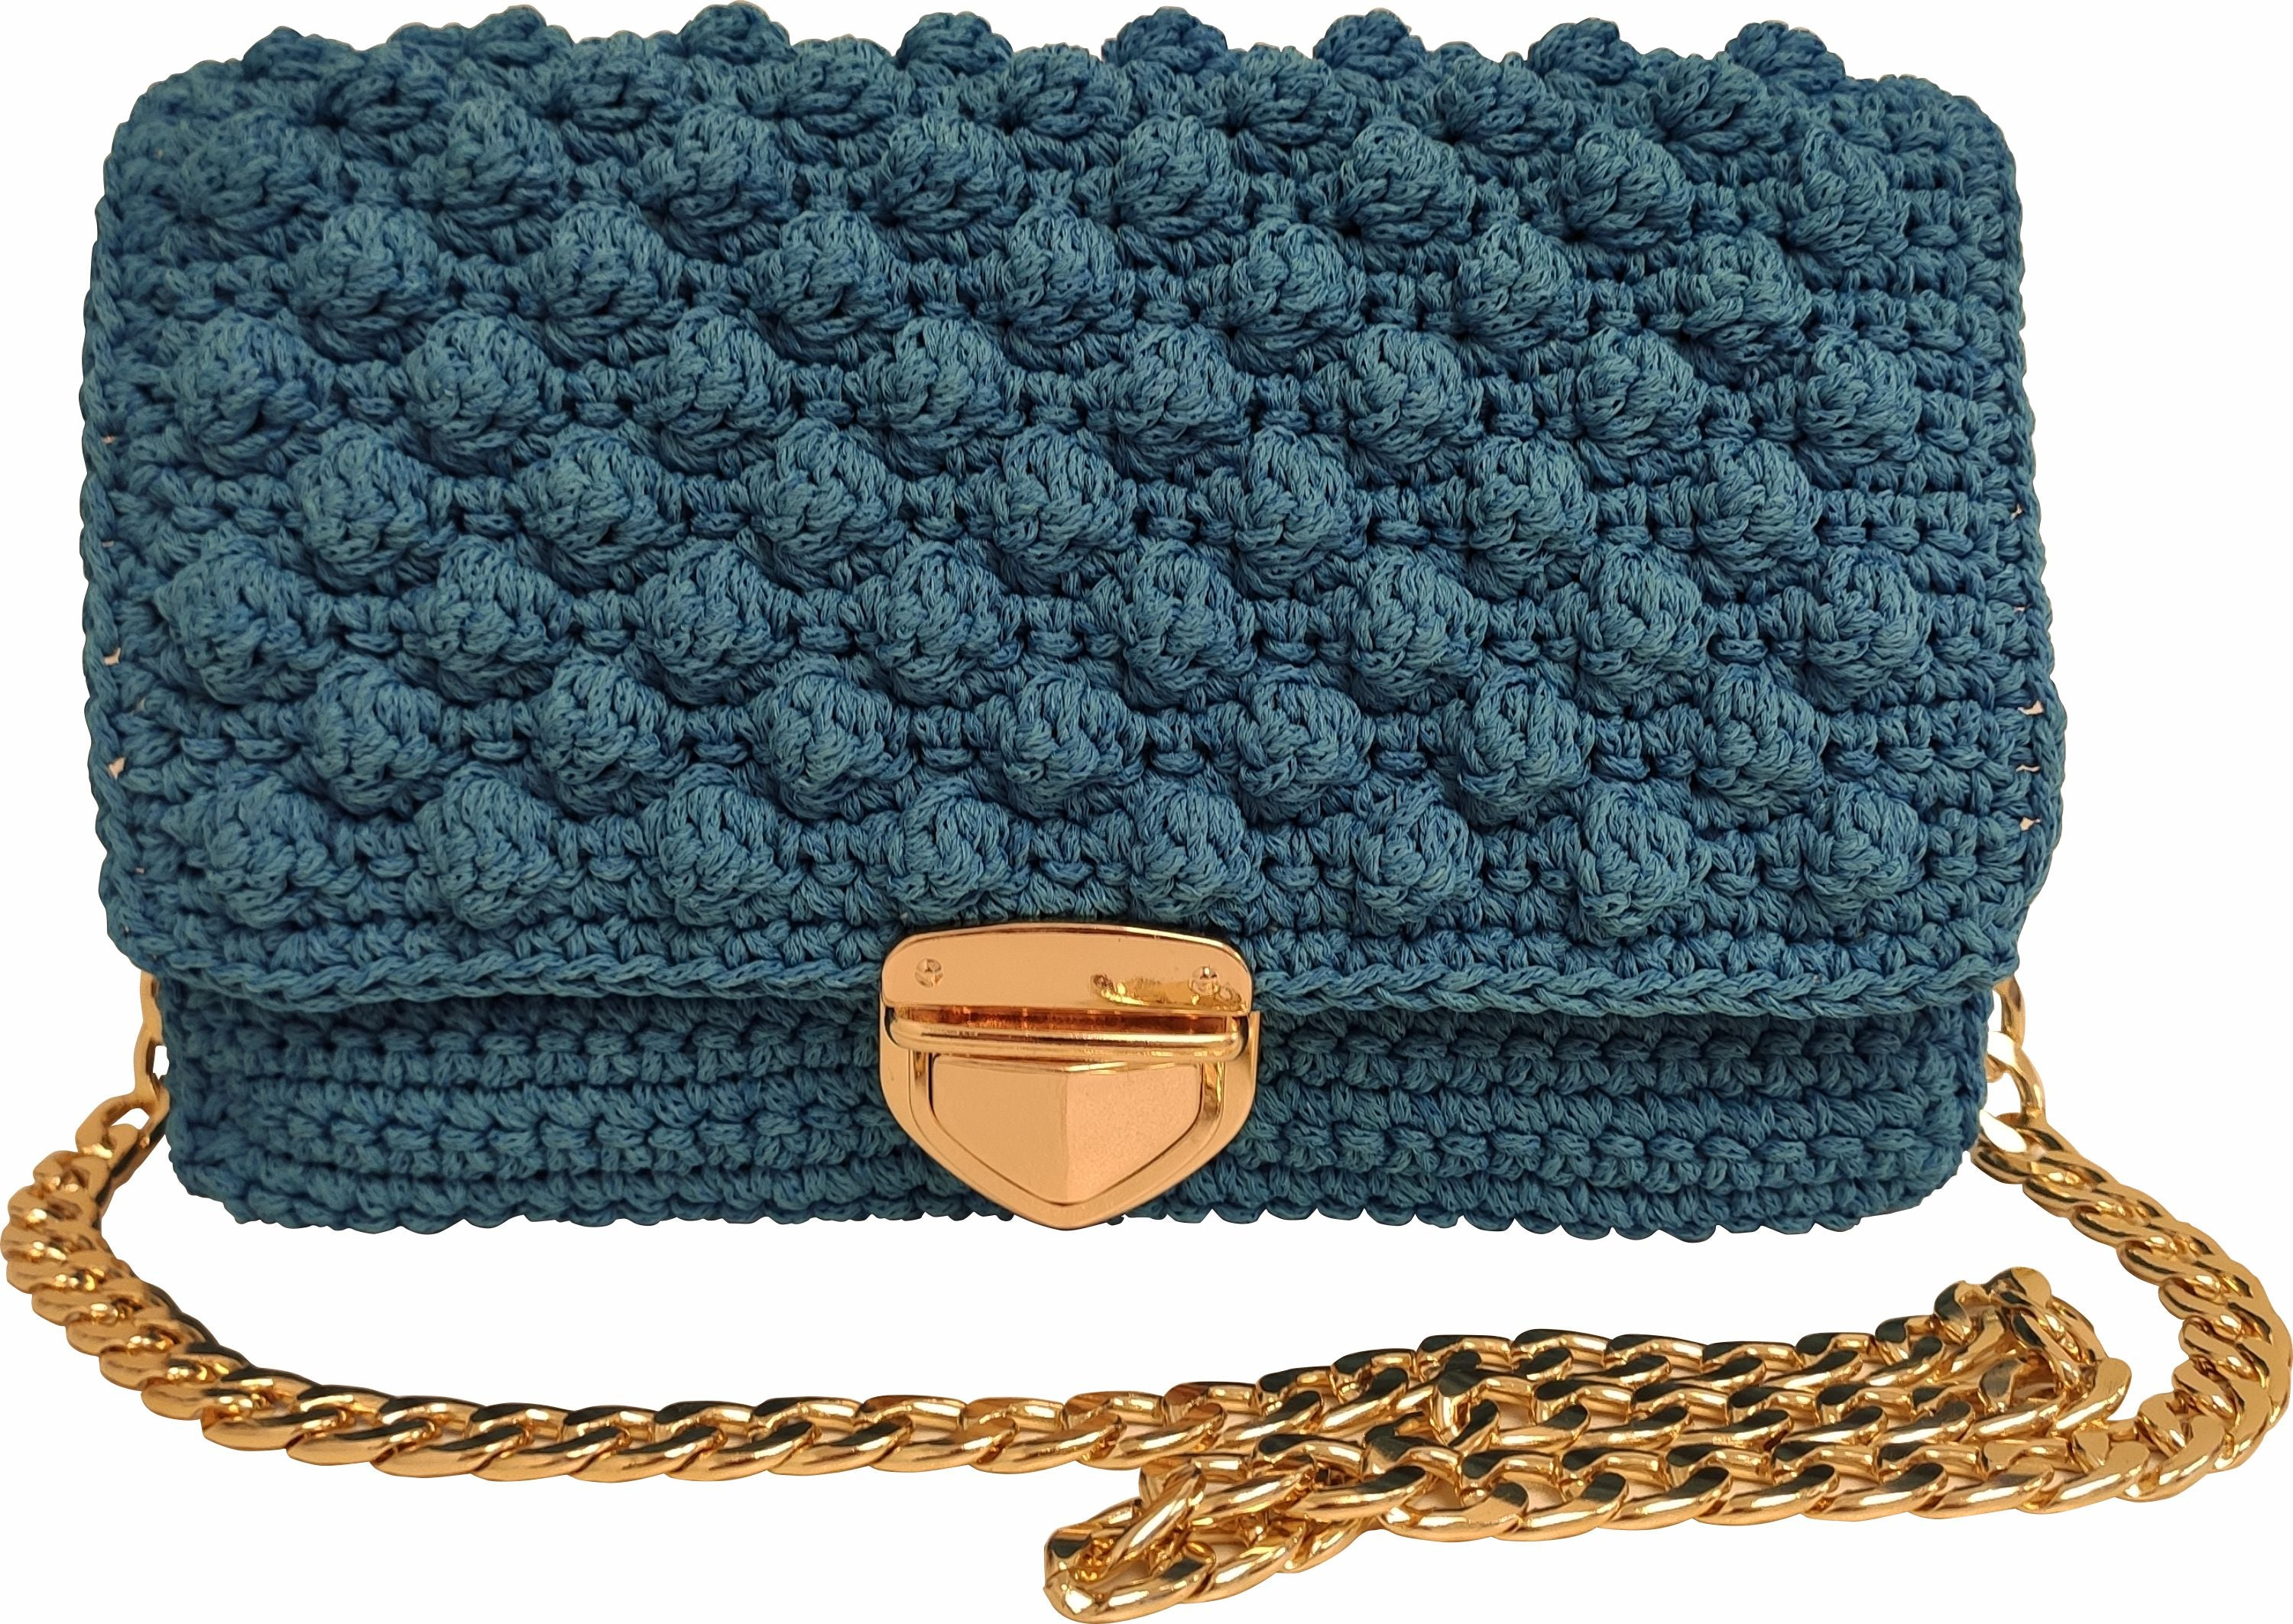 Handmade Knitted Chain Bag